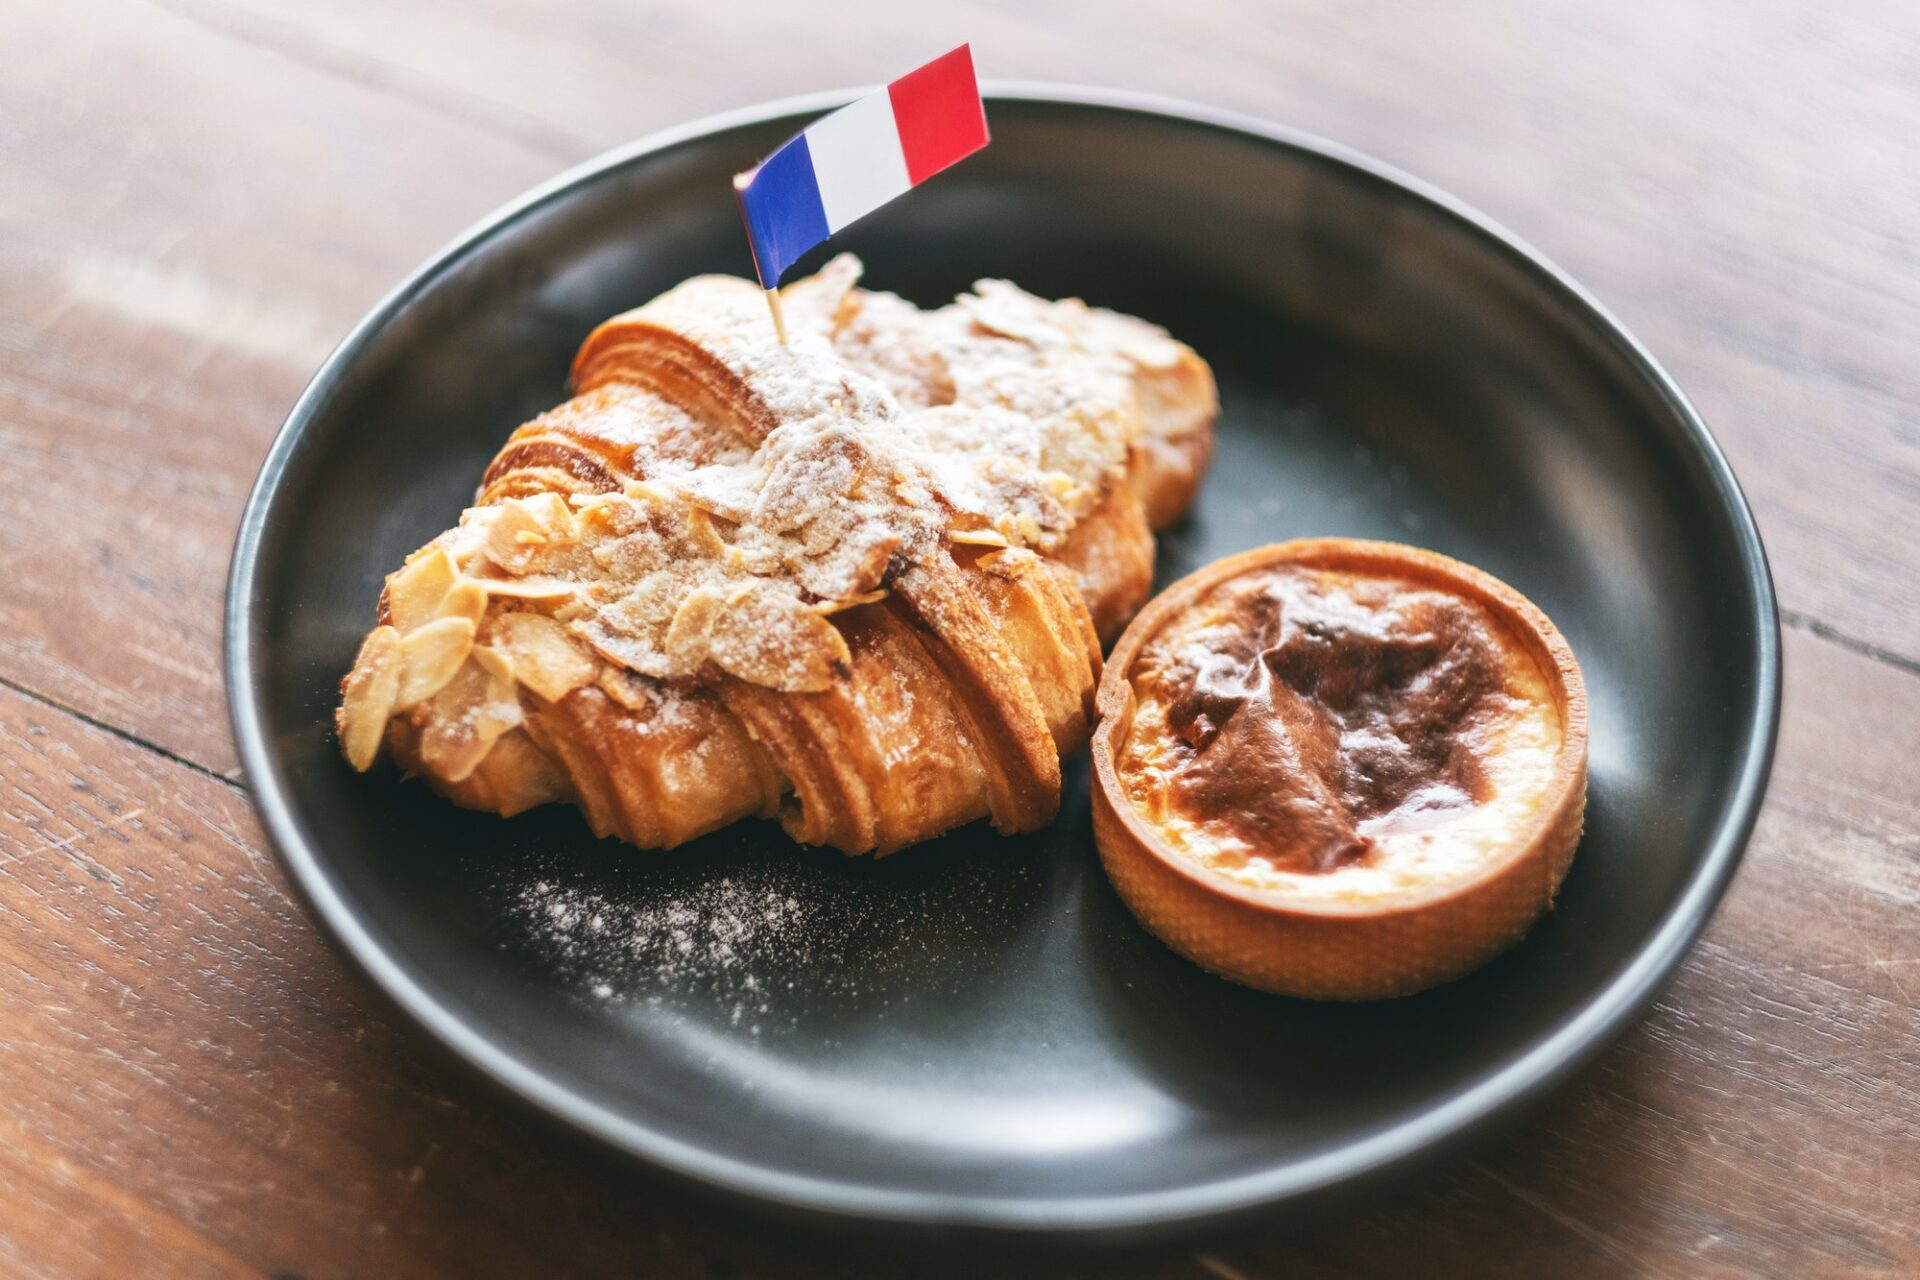 A piece of croissant and tart with a flag of France in a black plate on wooden table in cafe